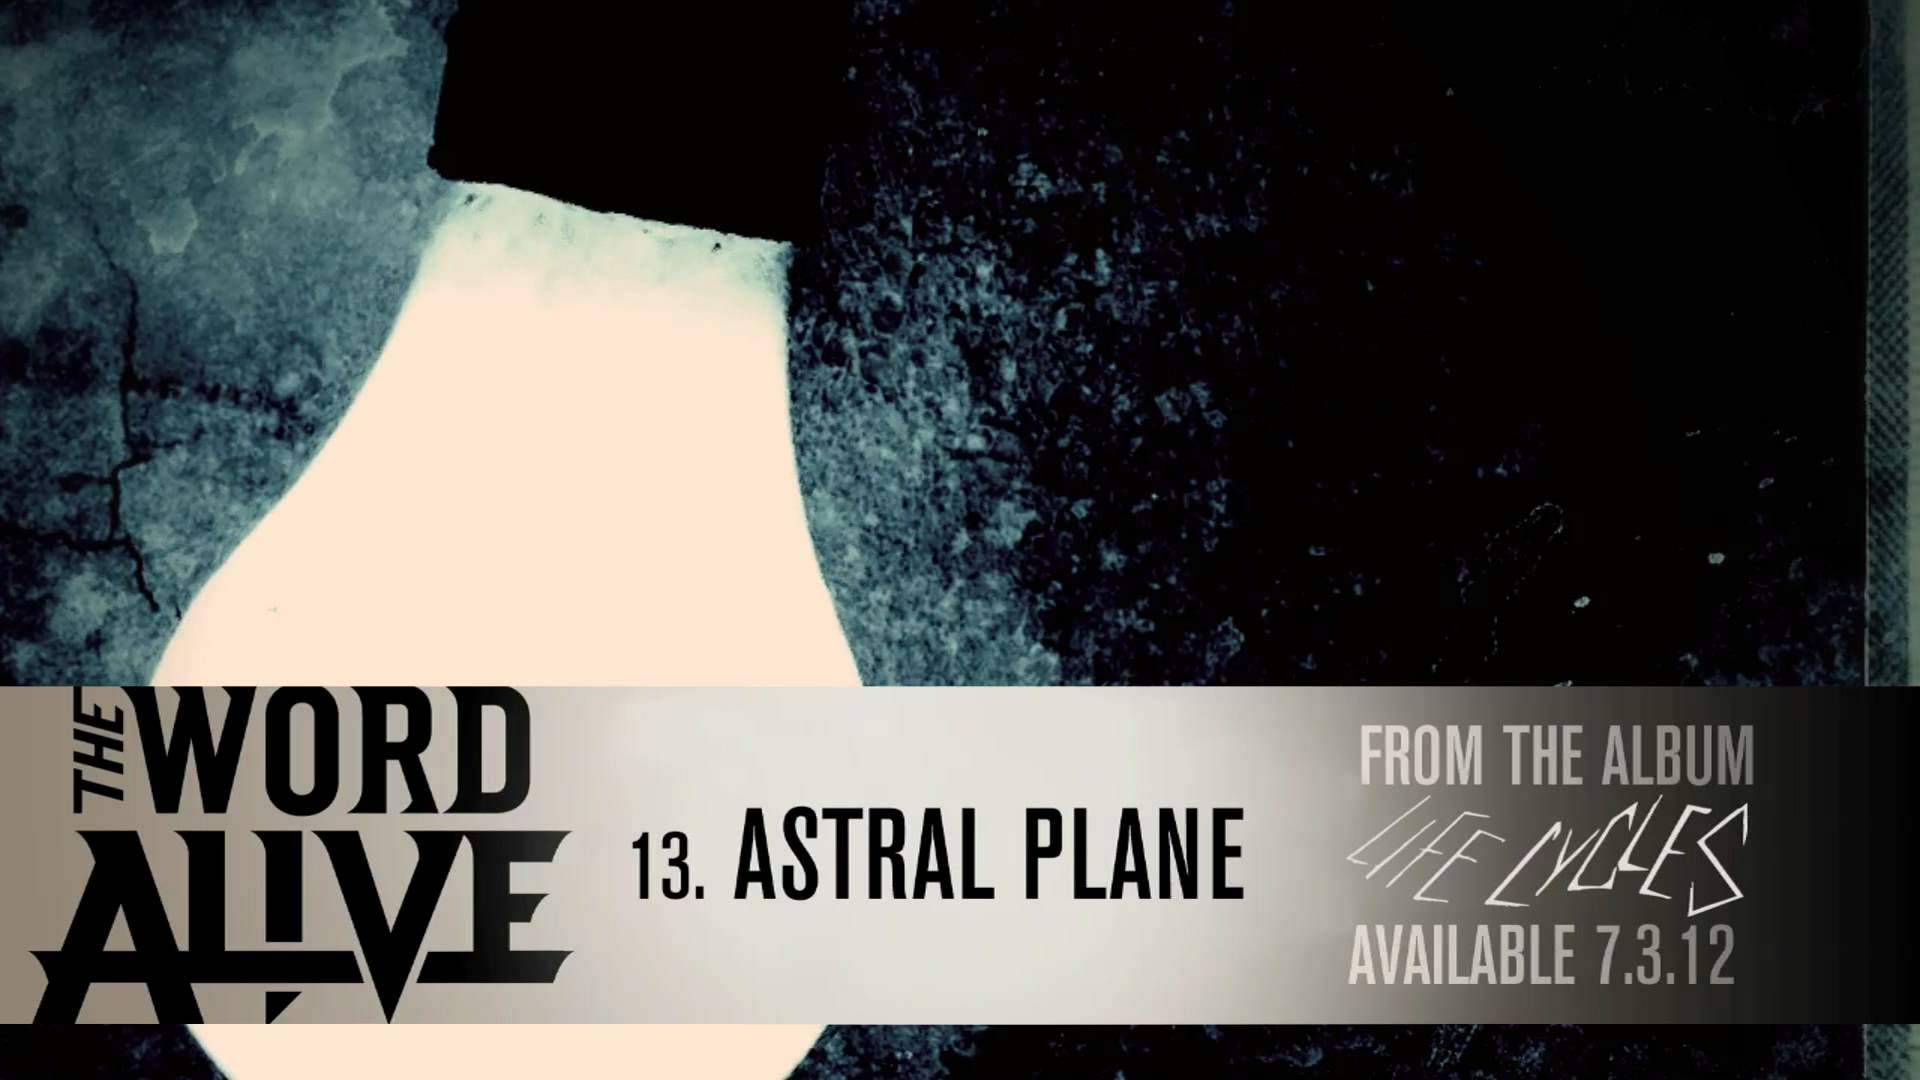 The Word Alive - 'Astral Plane' Track 13